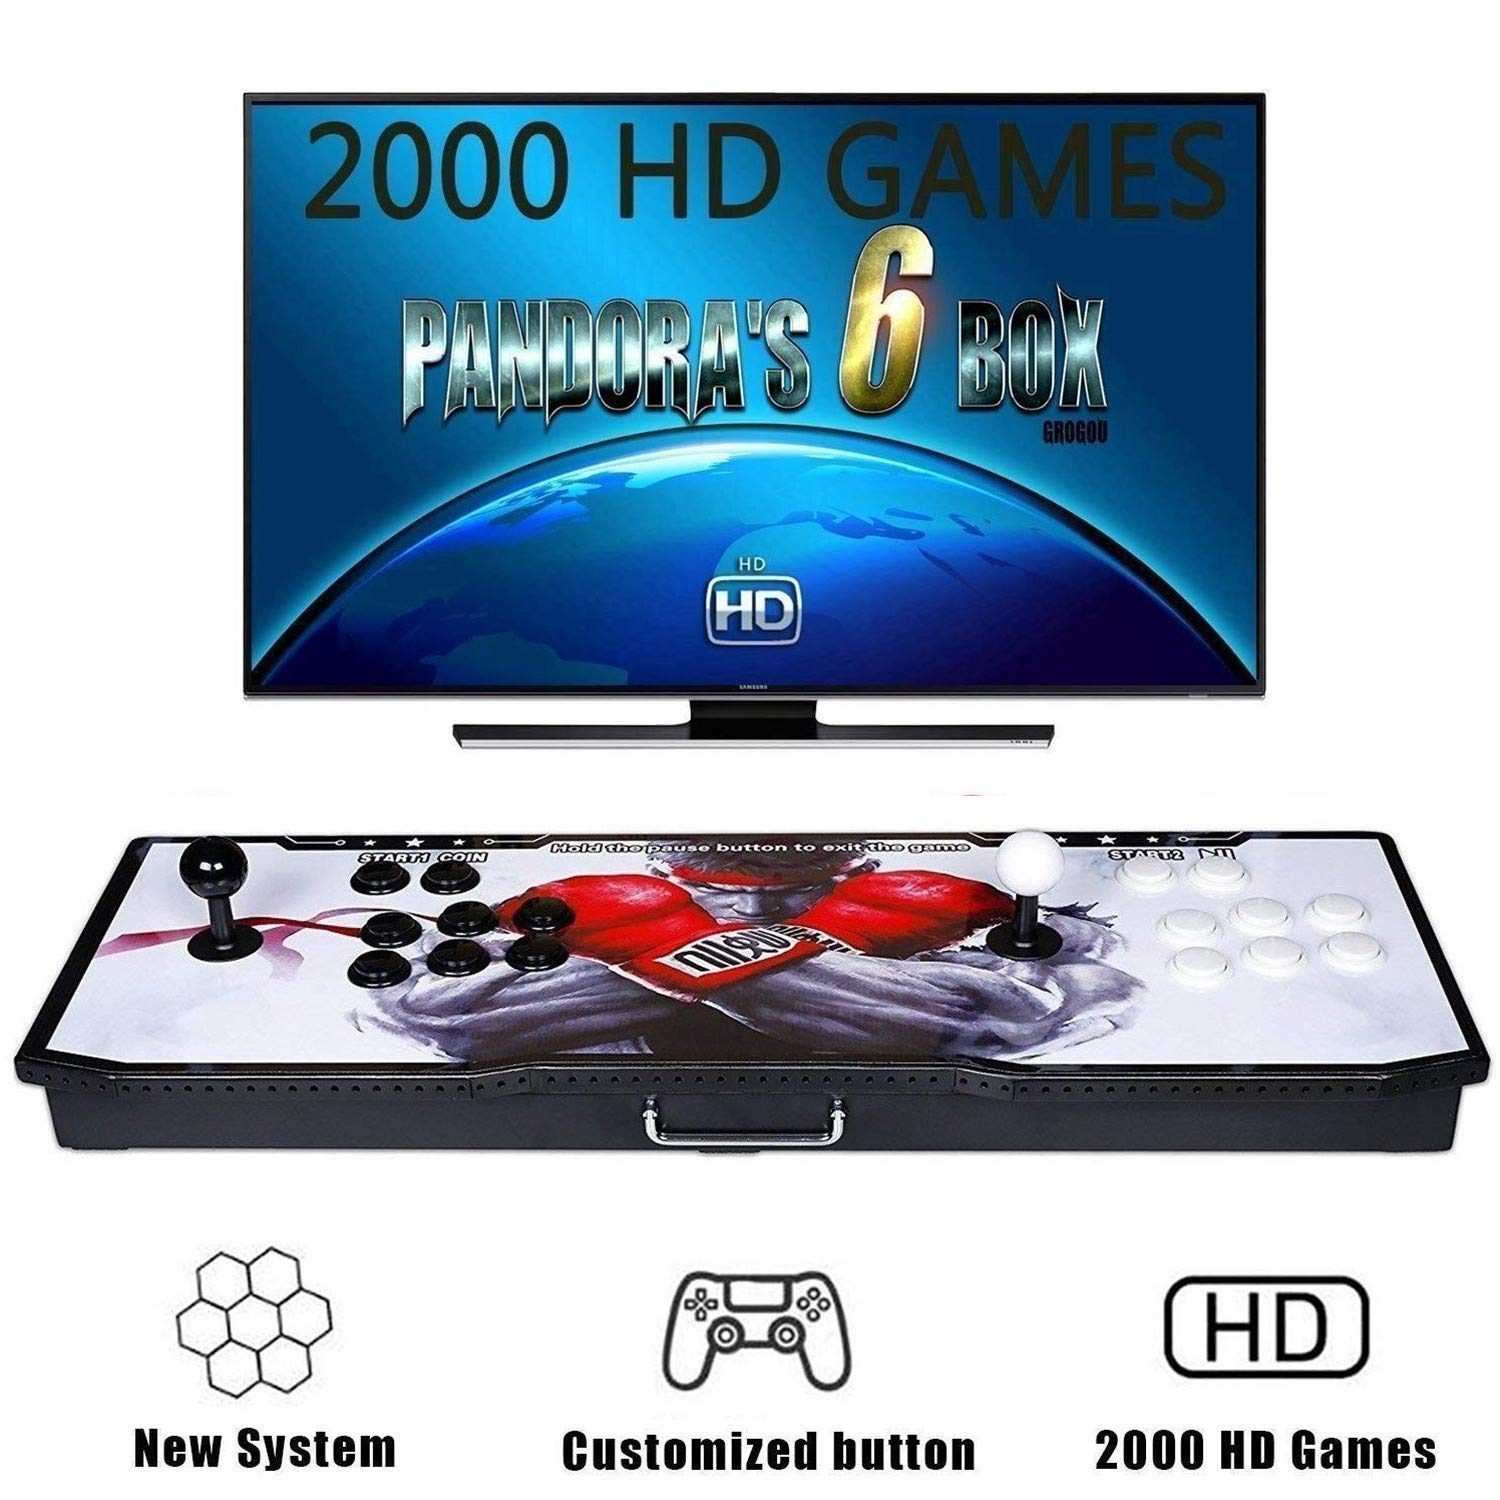 【2020 Games in 1】 Arcade Game Console Ultra Slim Metal Double Stick 2020 Classic Arcade Game Machine 2 Players Pandoras Box 6S 1280X720 Full HD Video Game Console for Computer & Projector & TV